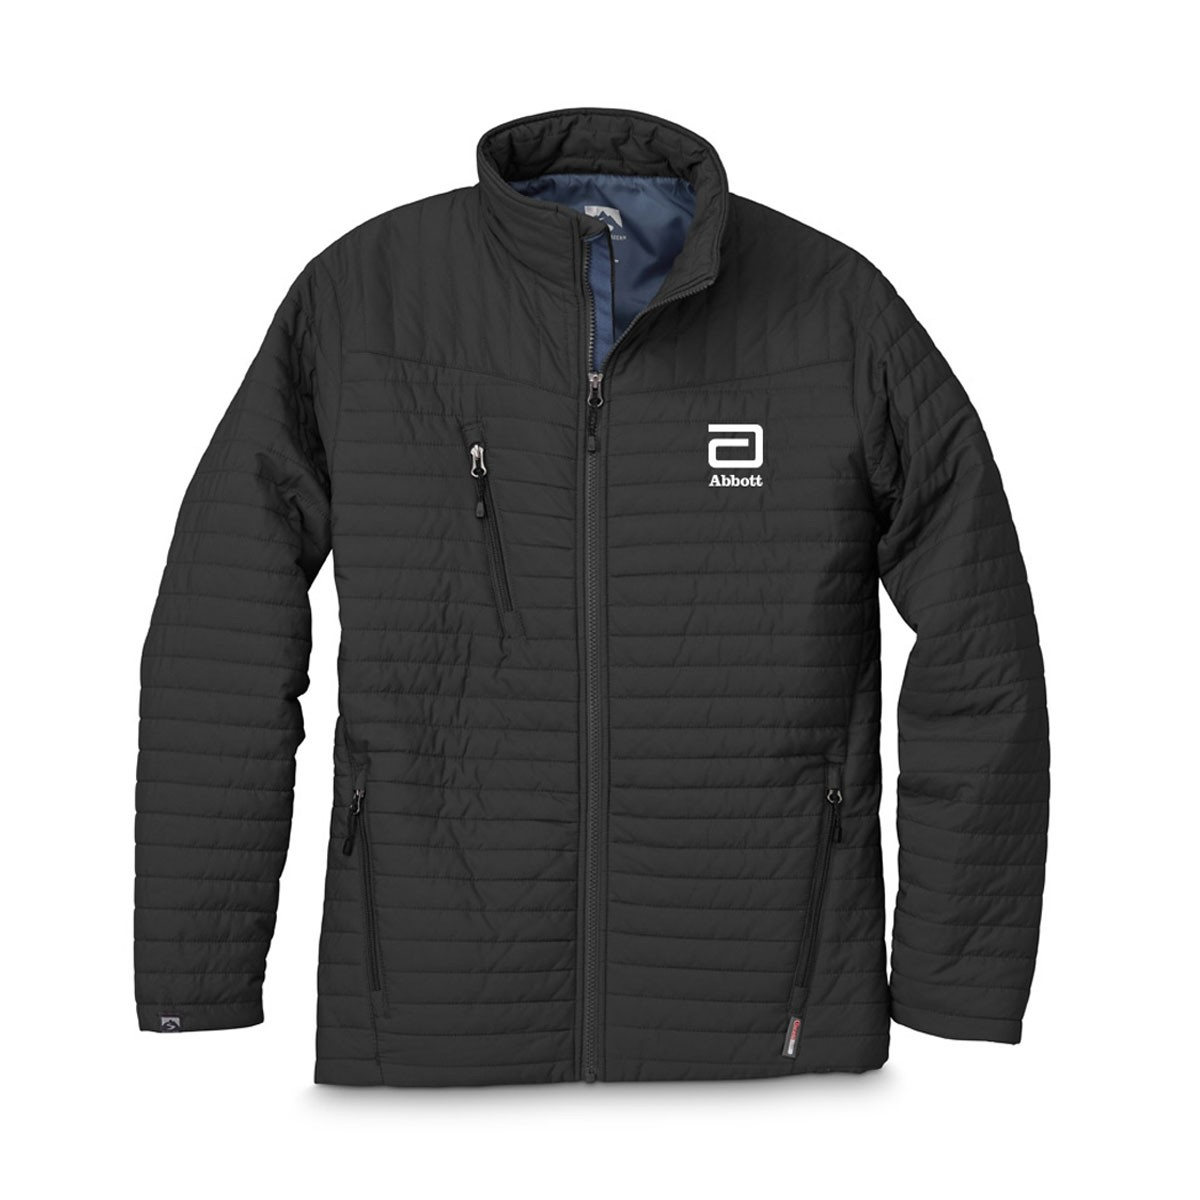 QUILTED THERMOLITE® JACKET: MEN